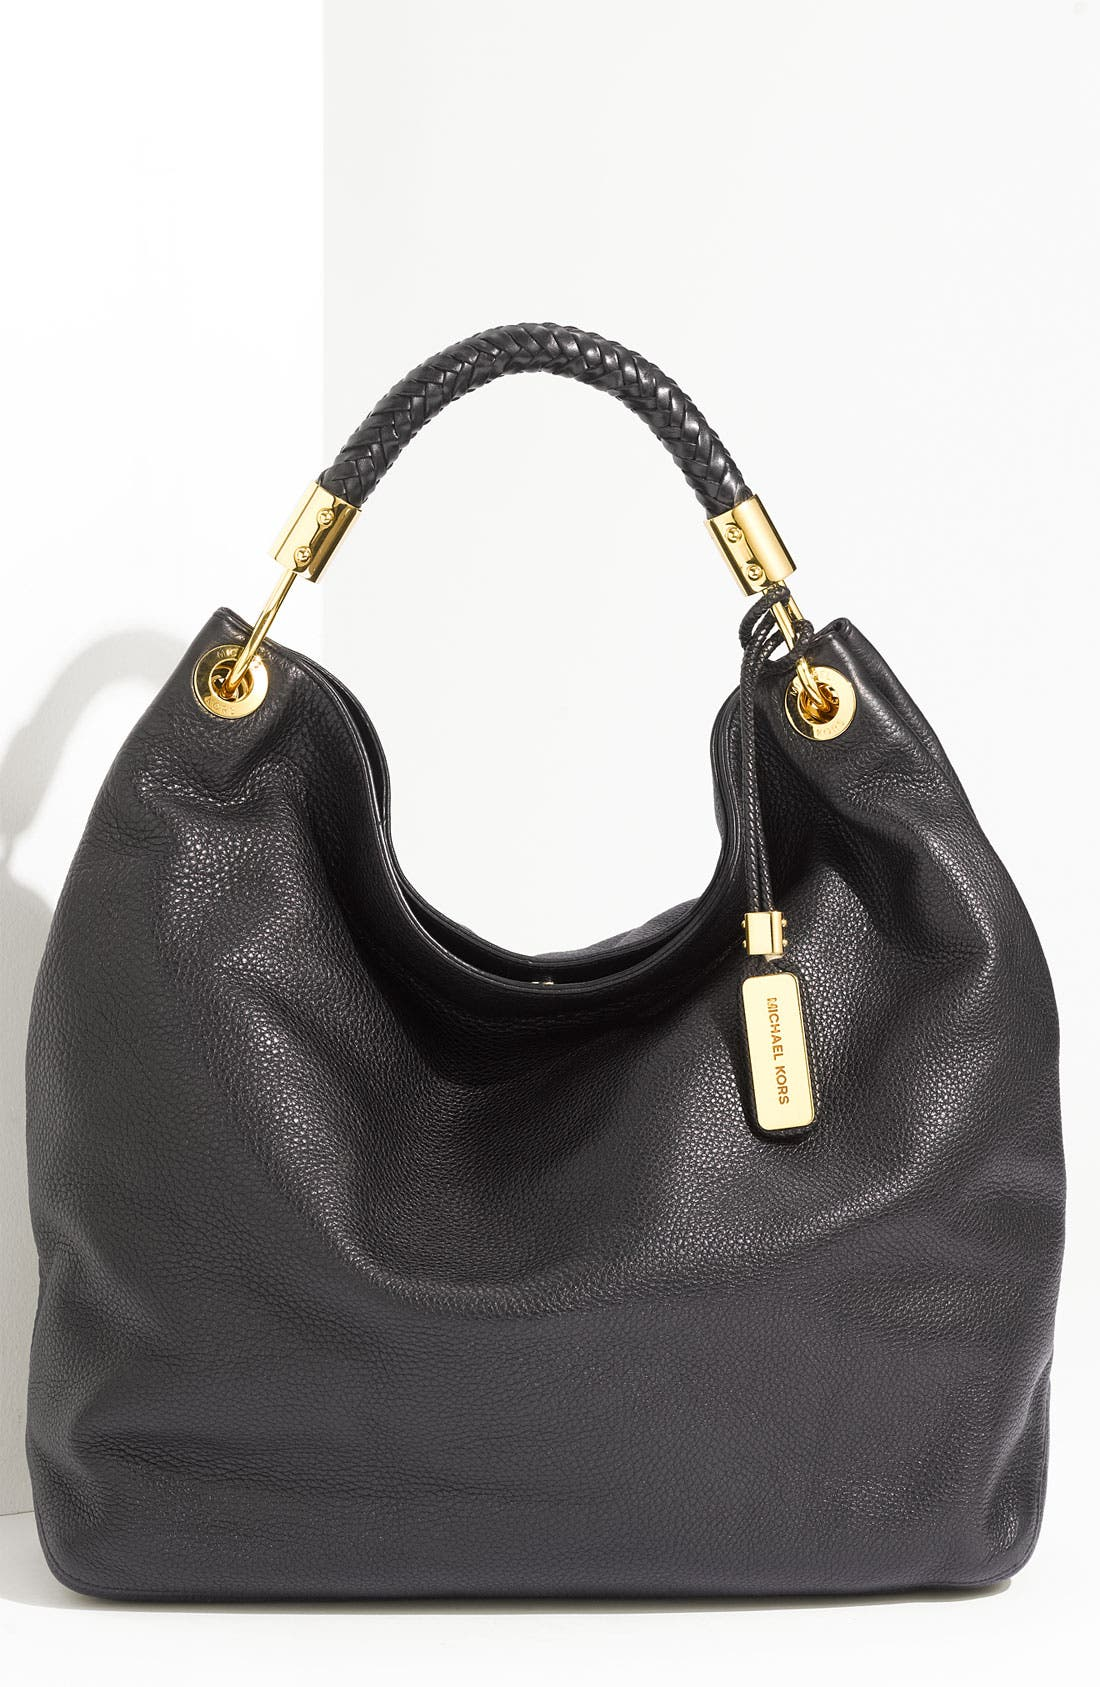 Main Image - Michael Kors 'Skorpios - Large' Leather Hobo